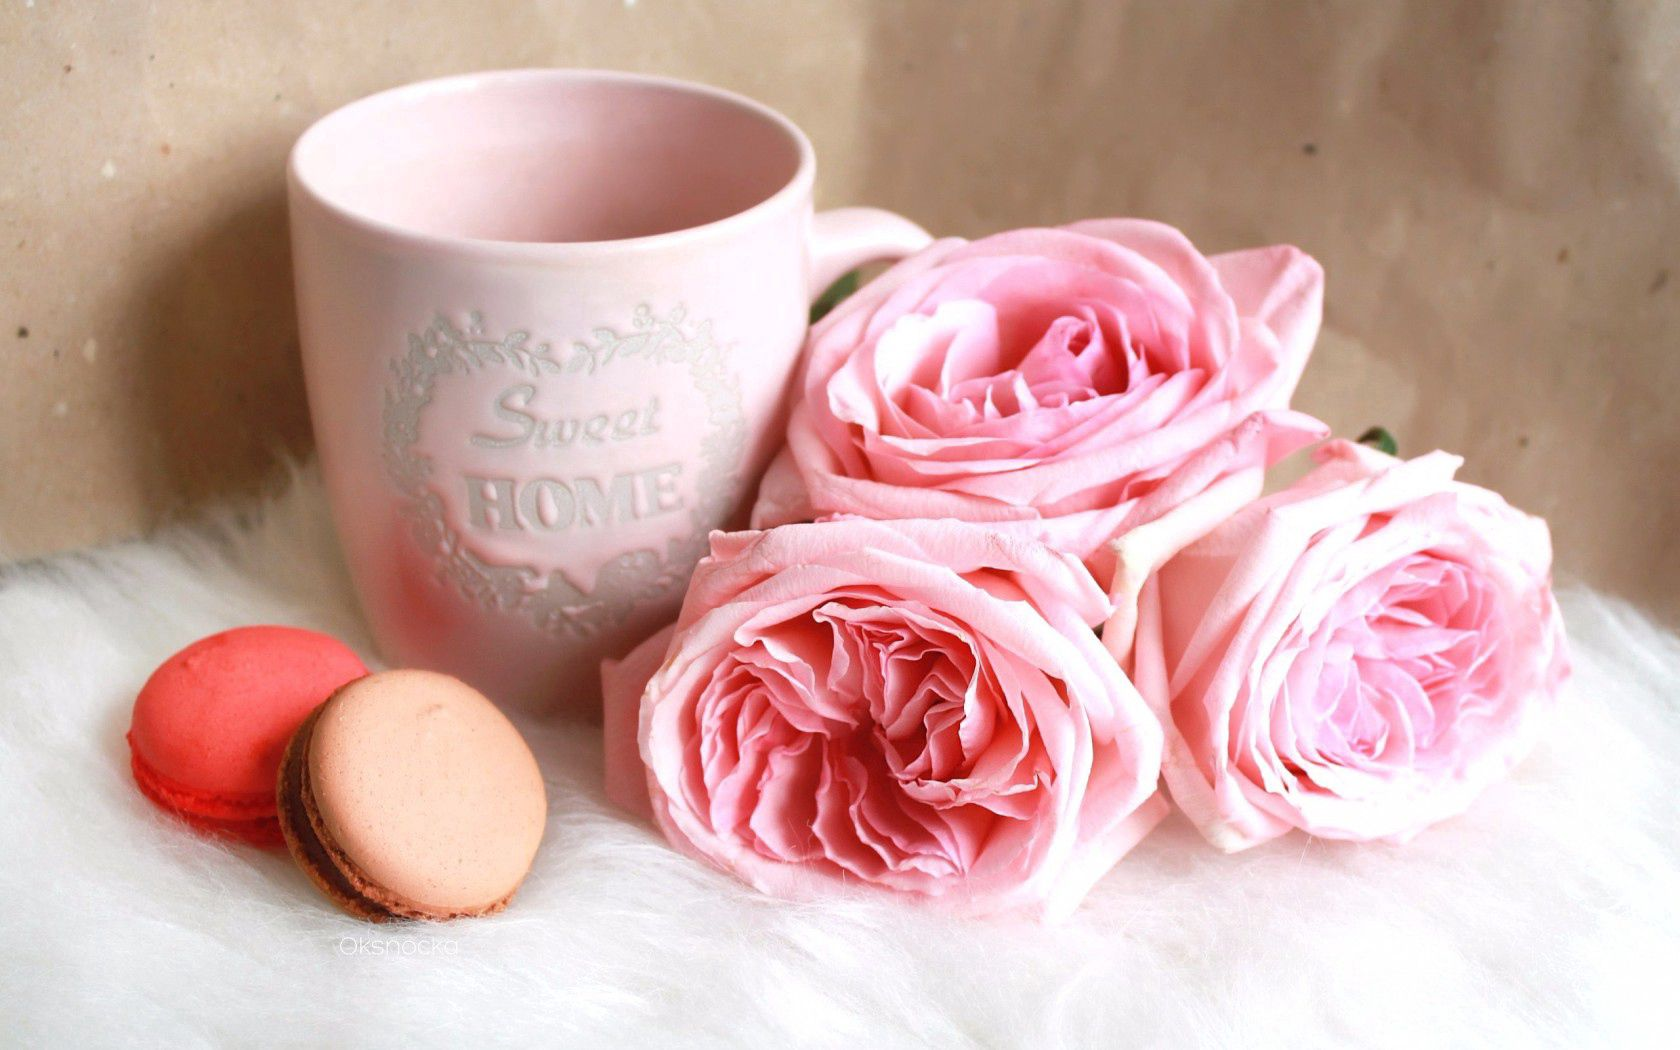 128979 download wallpaper Food, Macaron, Cookies, Cup, Roses screensavers and pictures for free